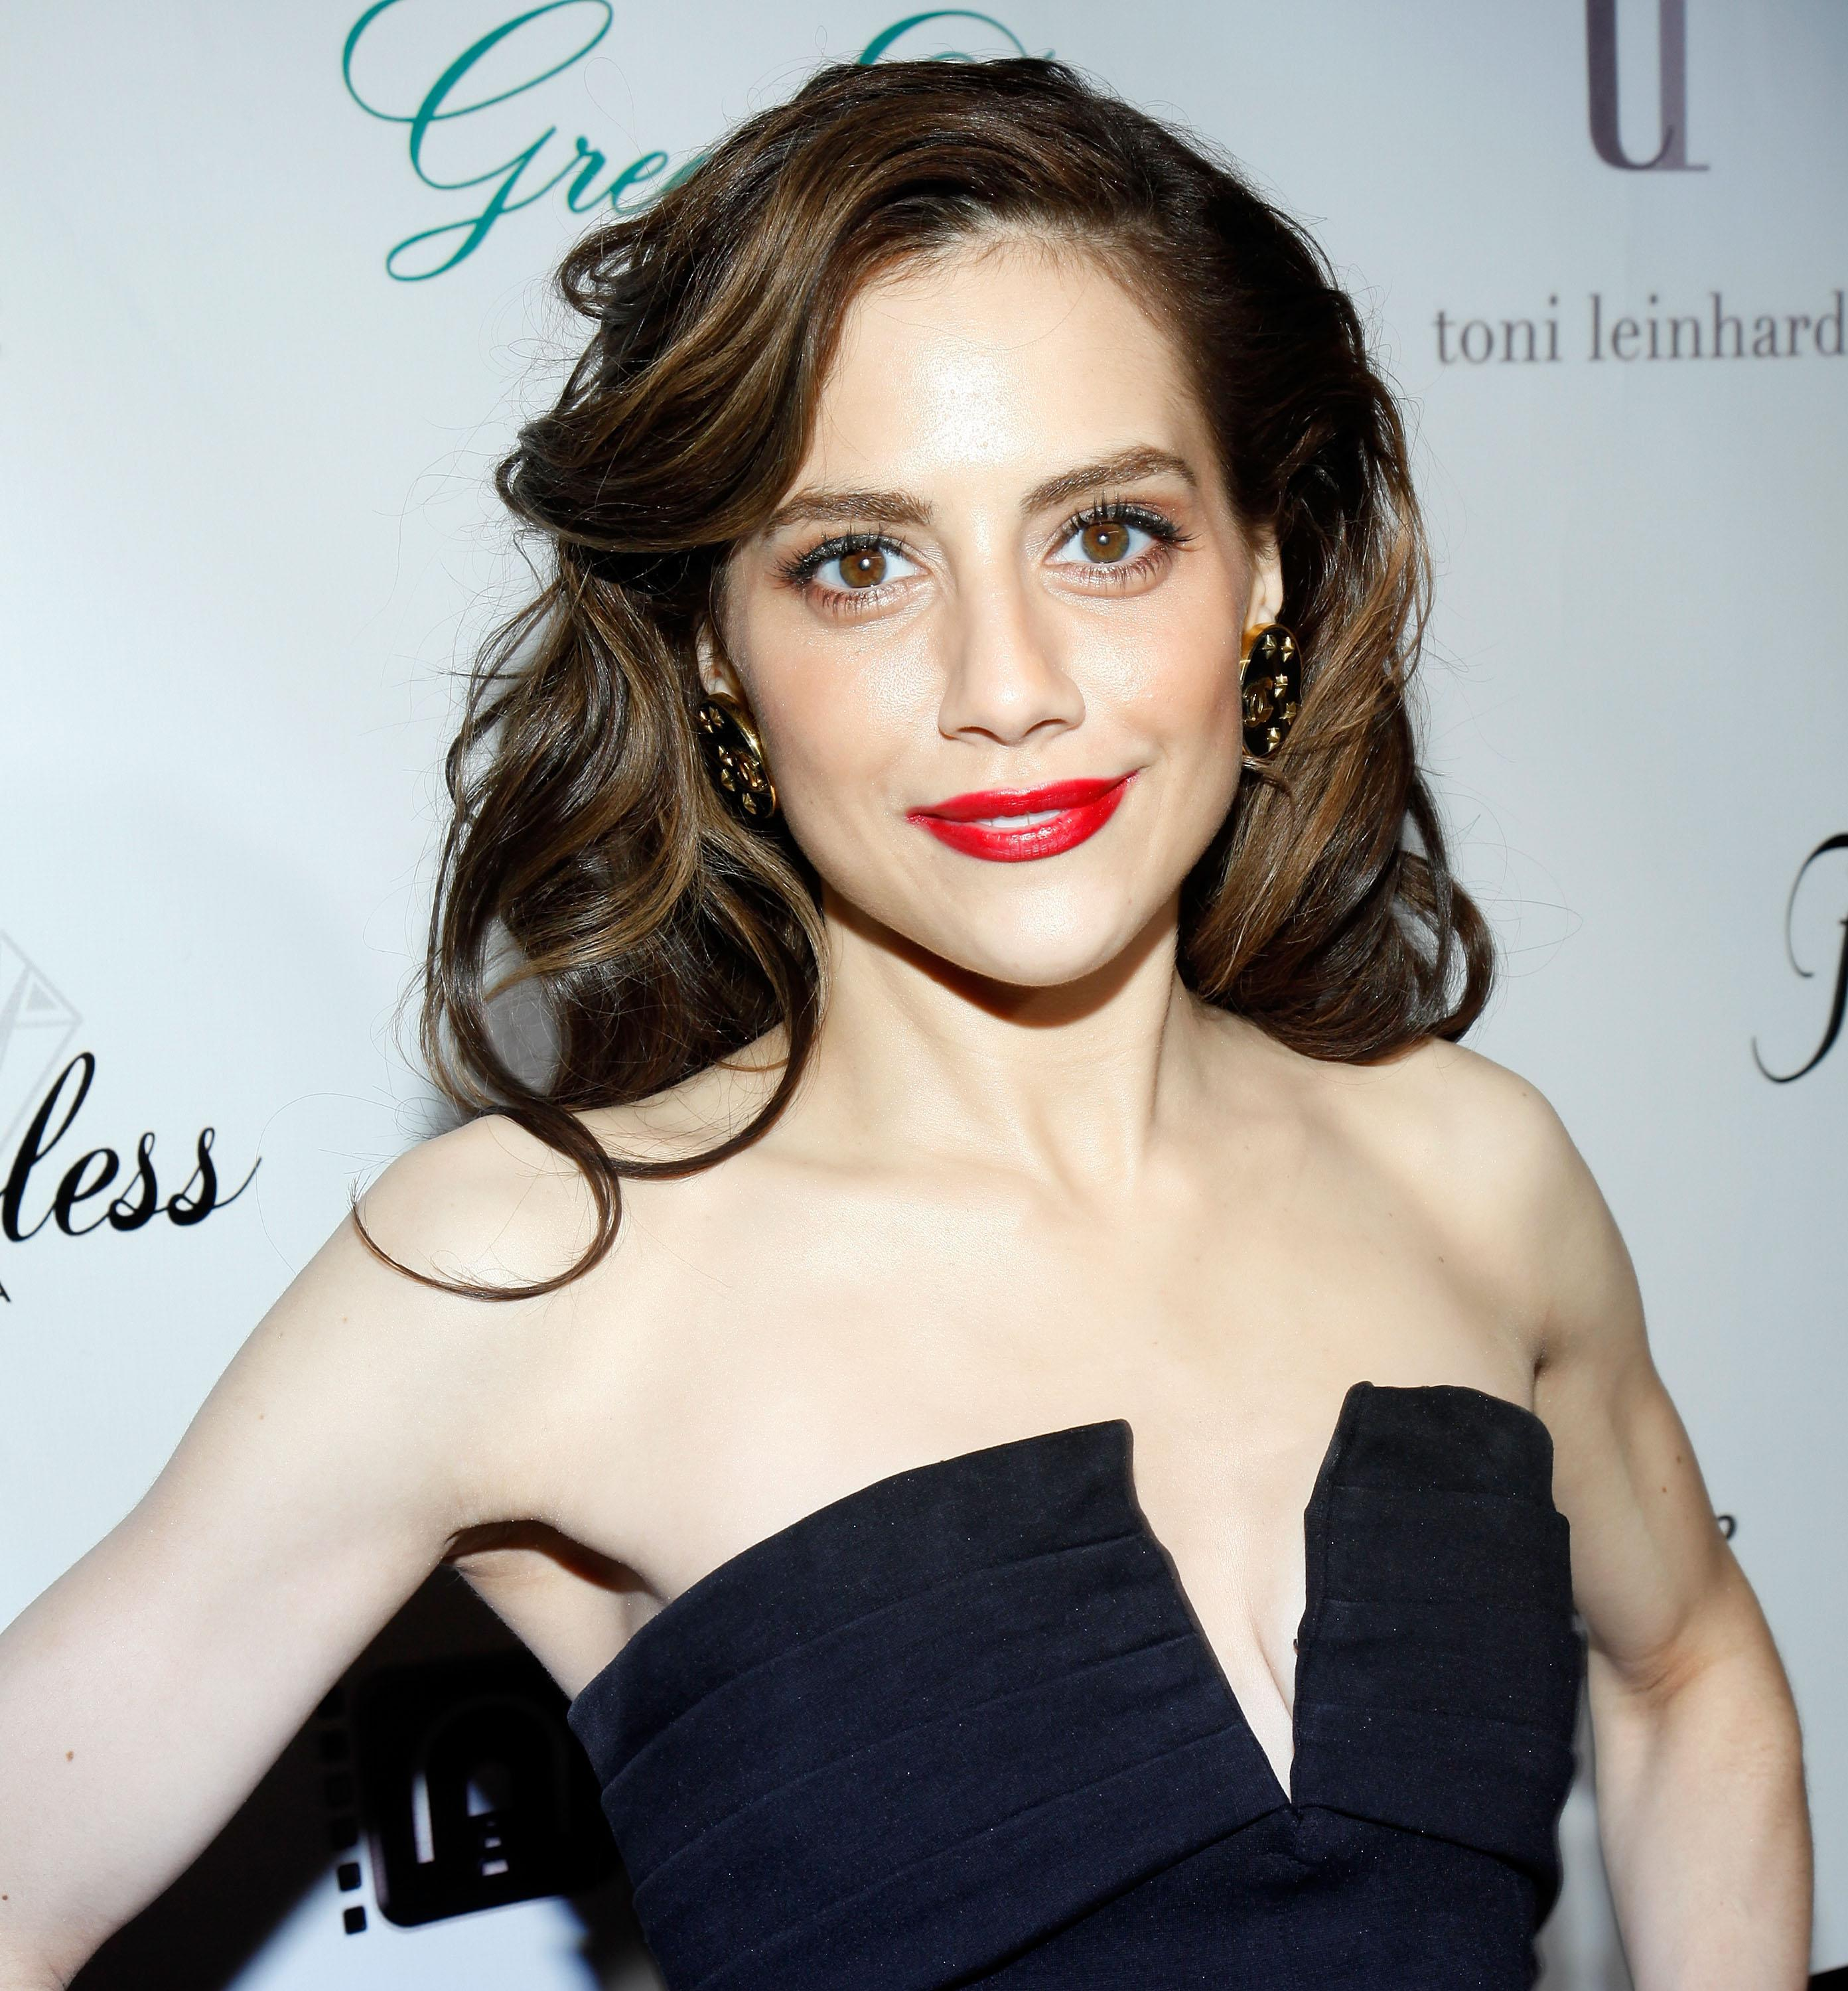 """BEVERLY HILLS, CA - DECEMBER 01: Actress Brittany Murphy attends """"Across The Hall"""" Los Angeles Premiere at Laemmle's Music Hall 3 on December 1, 2009 in Beverly Hills, California. (Photo by Brian To/FilmMagic)"""